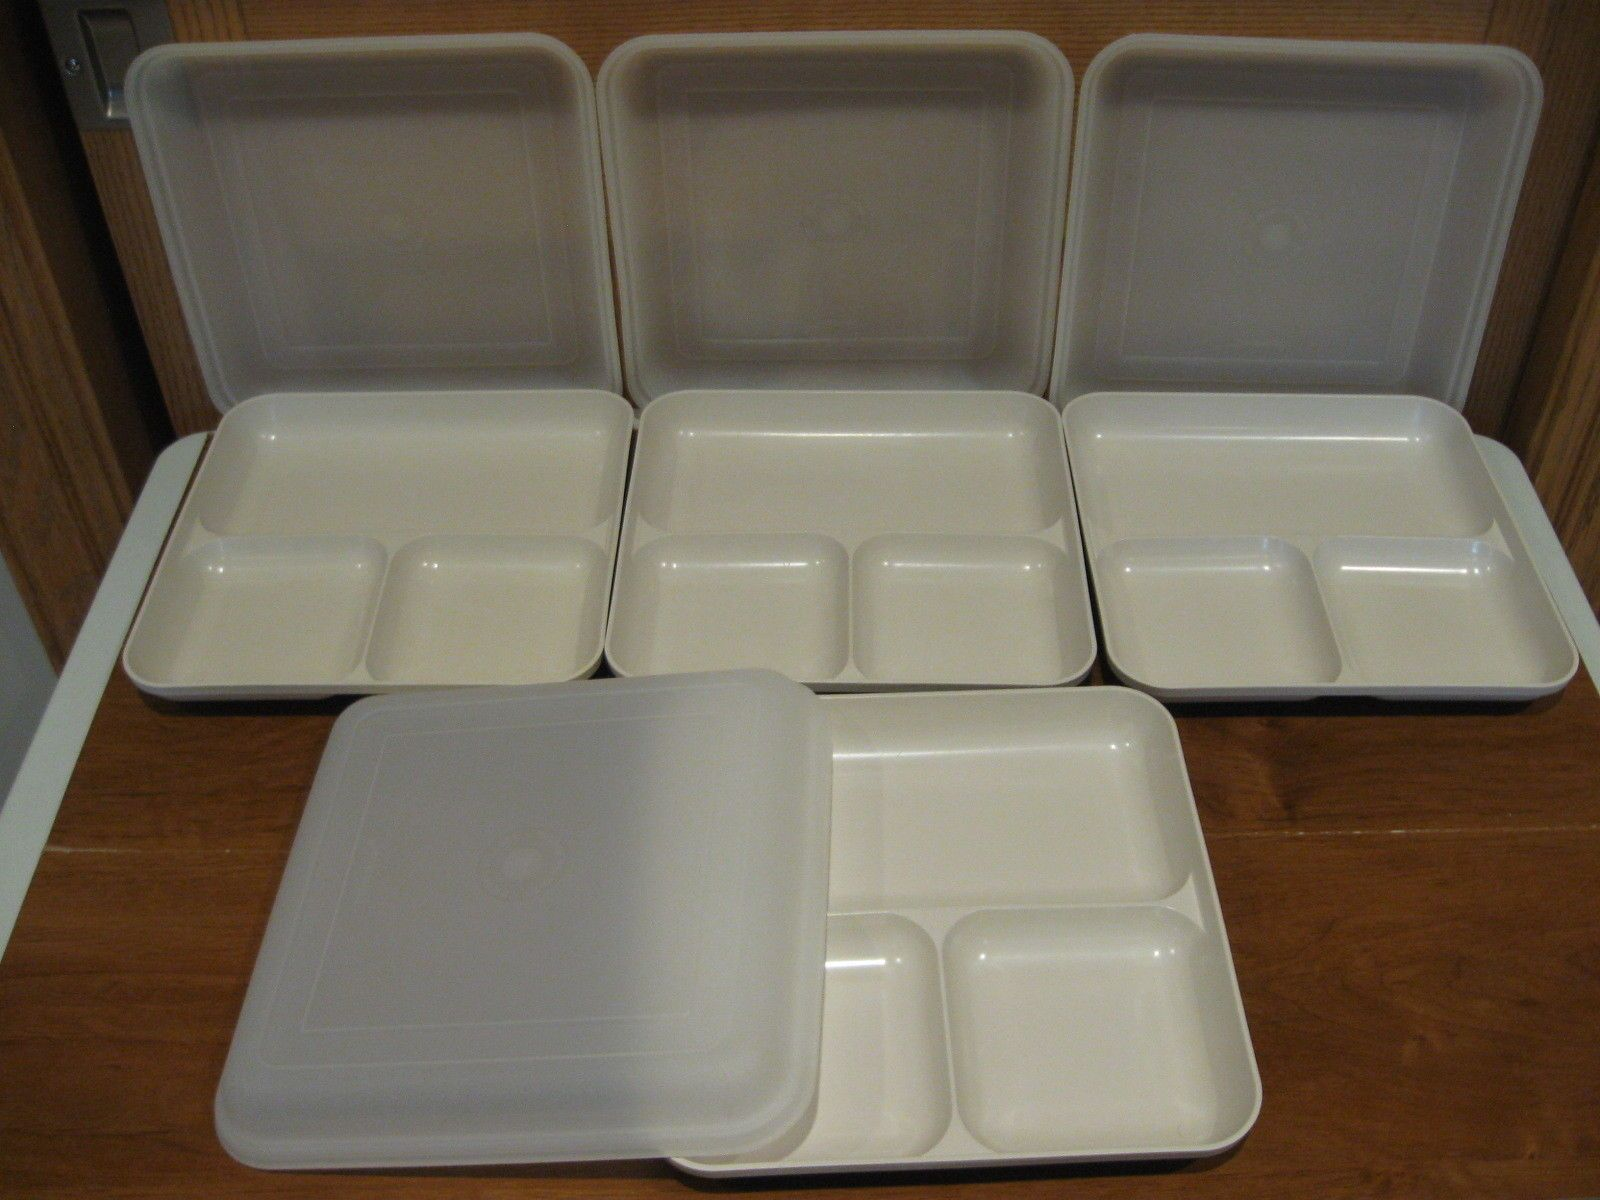 Tupperware 4 Ultra 21 Divide-a-dish 3 Section Square Plates W/sheer & Tupperware 4 Ultra 21 Divide-a-dish 3 Section Square Plates W/sheer ...